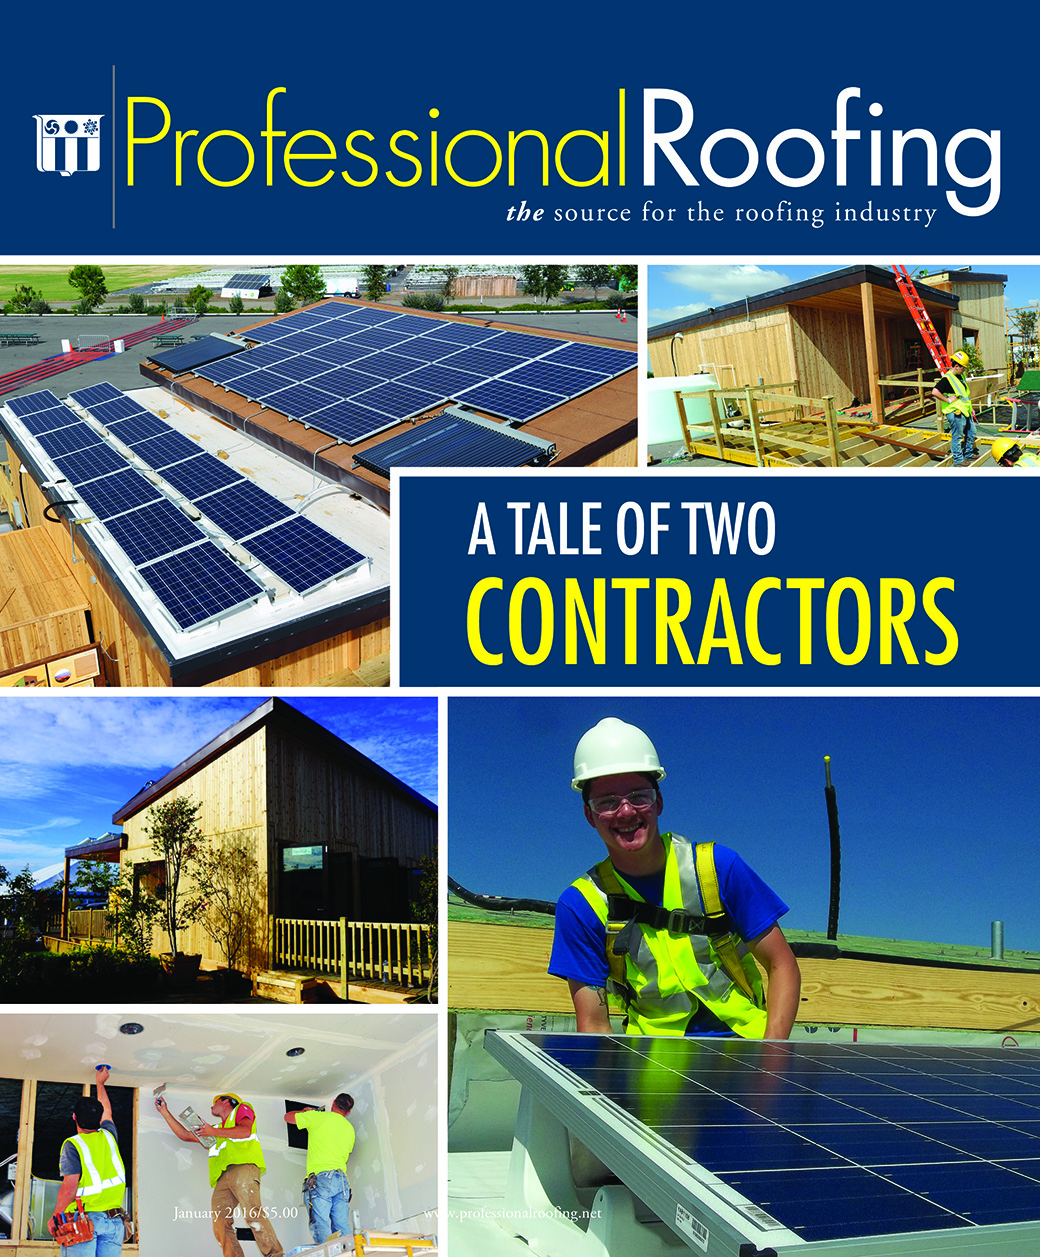 Professional Roofing Magazine 1/1/2016